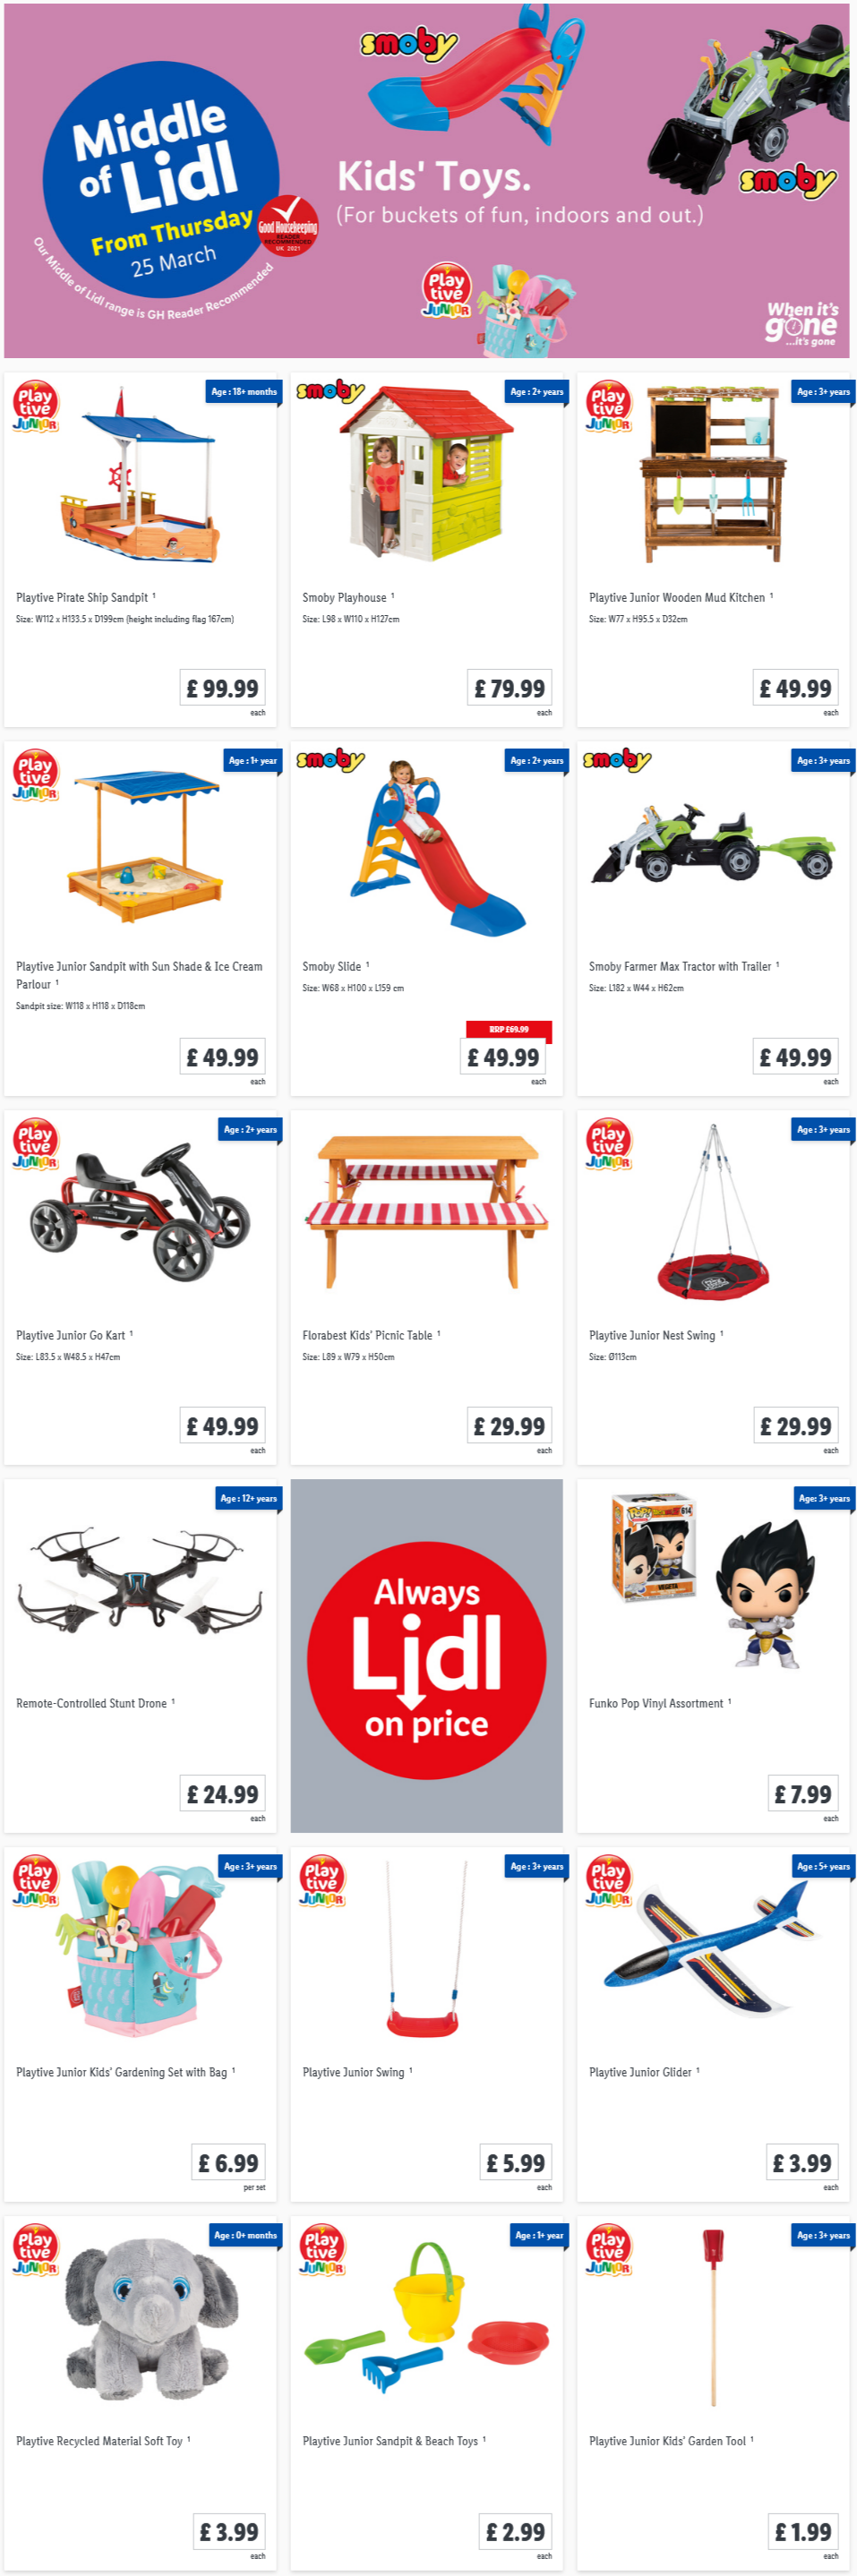 LIDL Kids Toys Offers From Thursday 25th March 2021